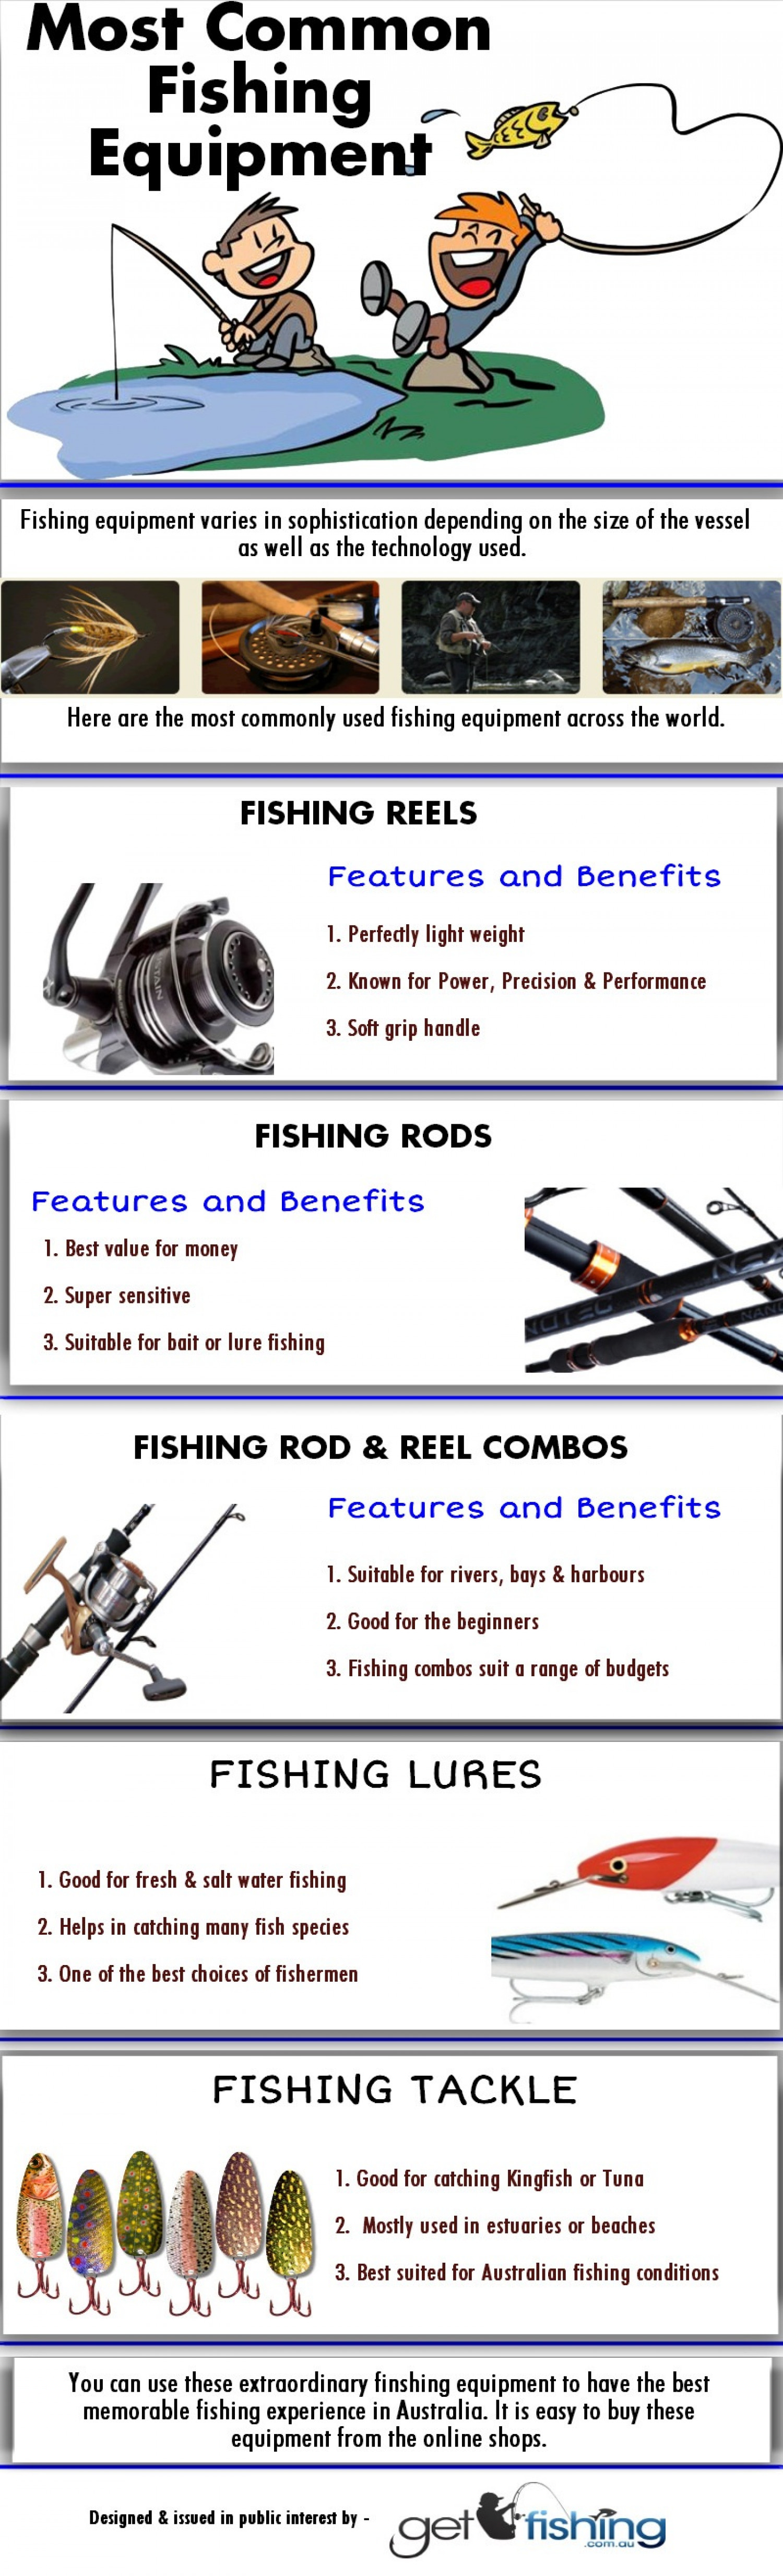 Most Common Fishing Equipment Infographic